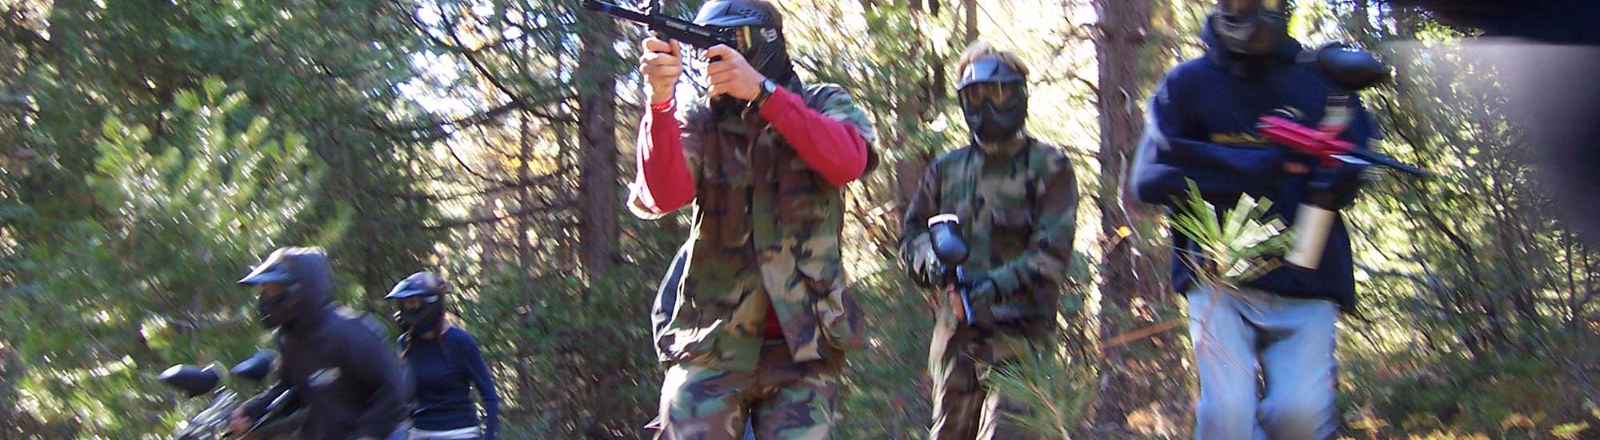 Five paintballers armed with paintball guns go in search of the enermy at one of three paintball locations in The Territory.